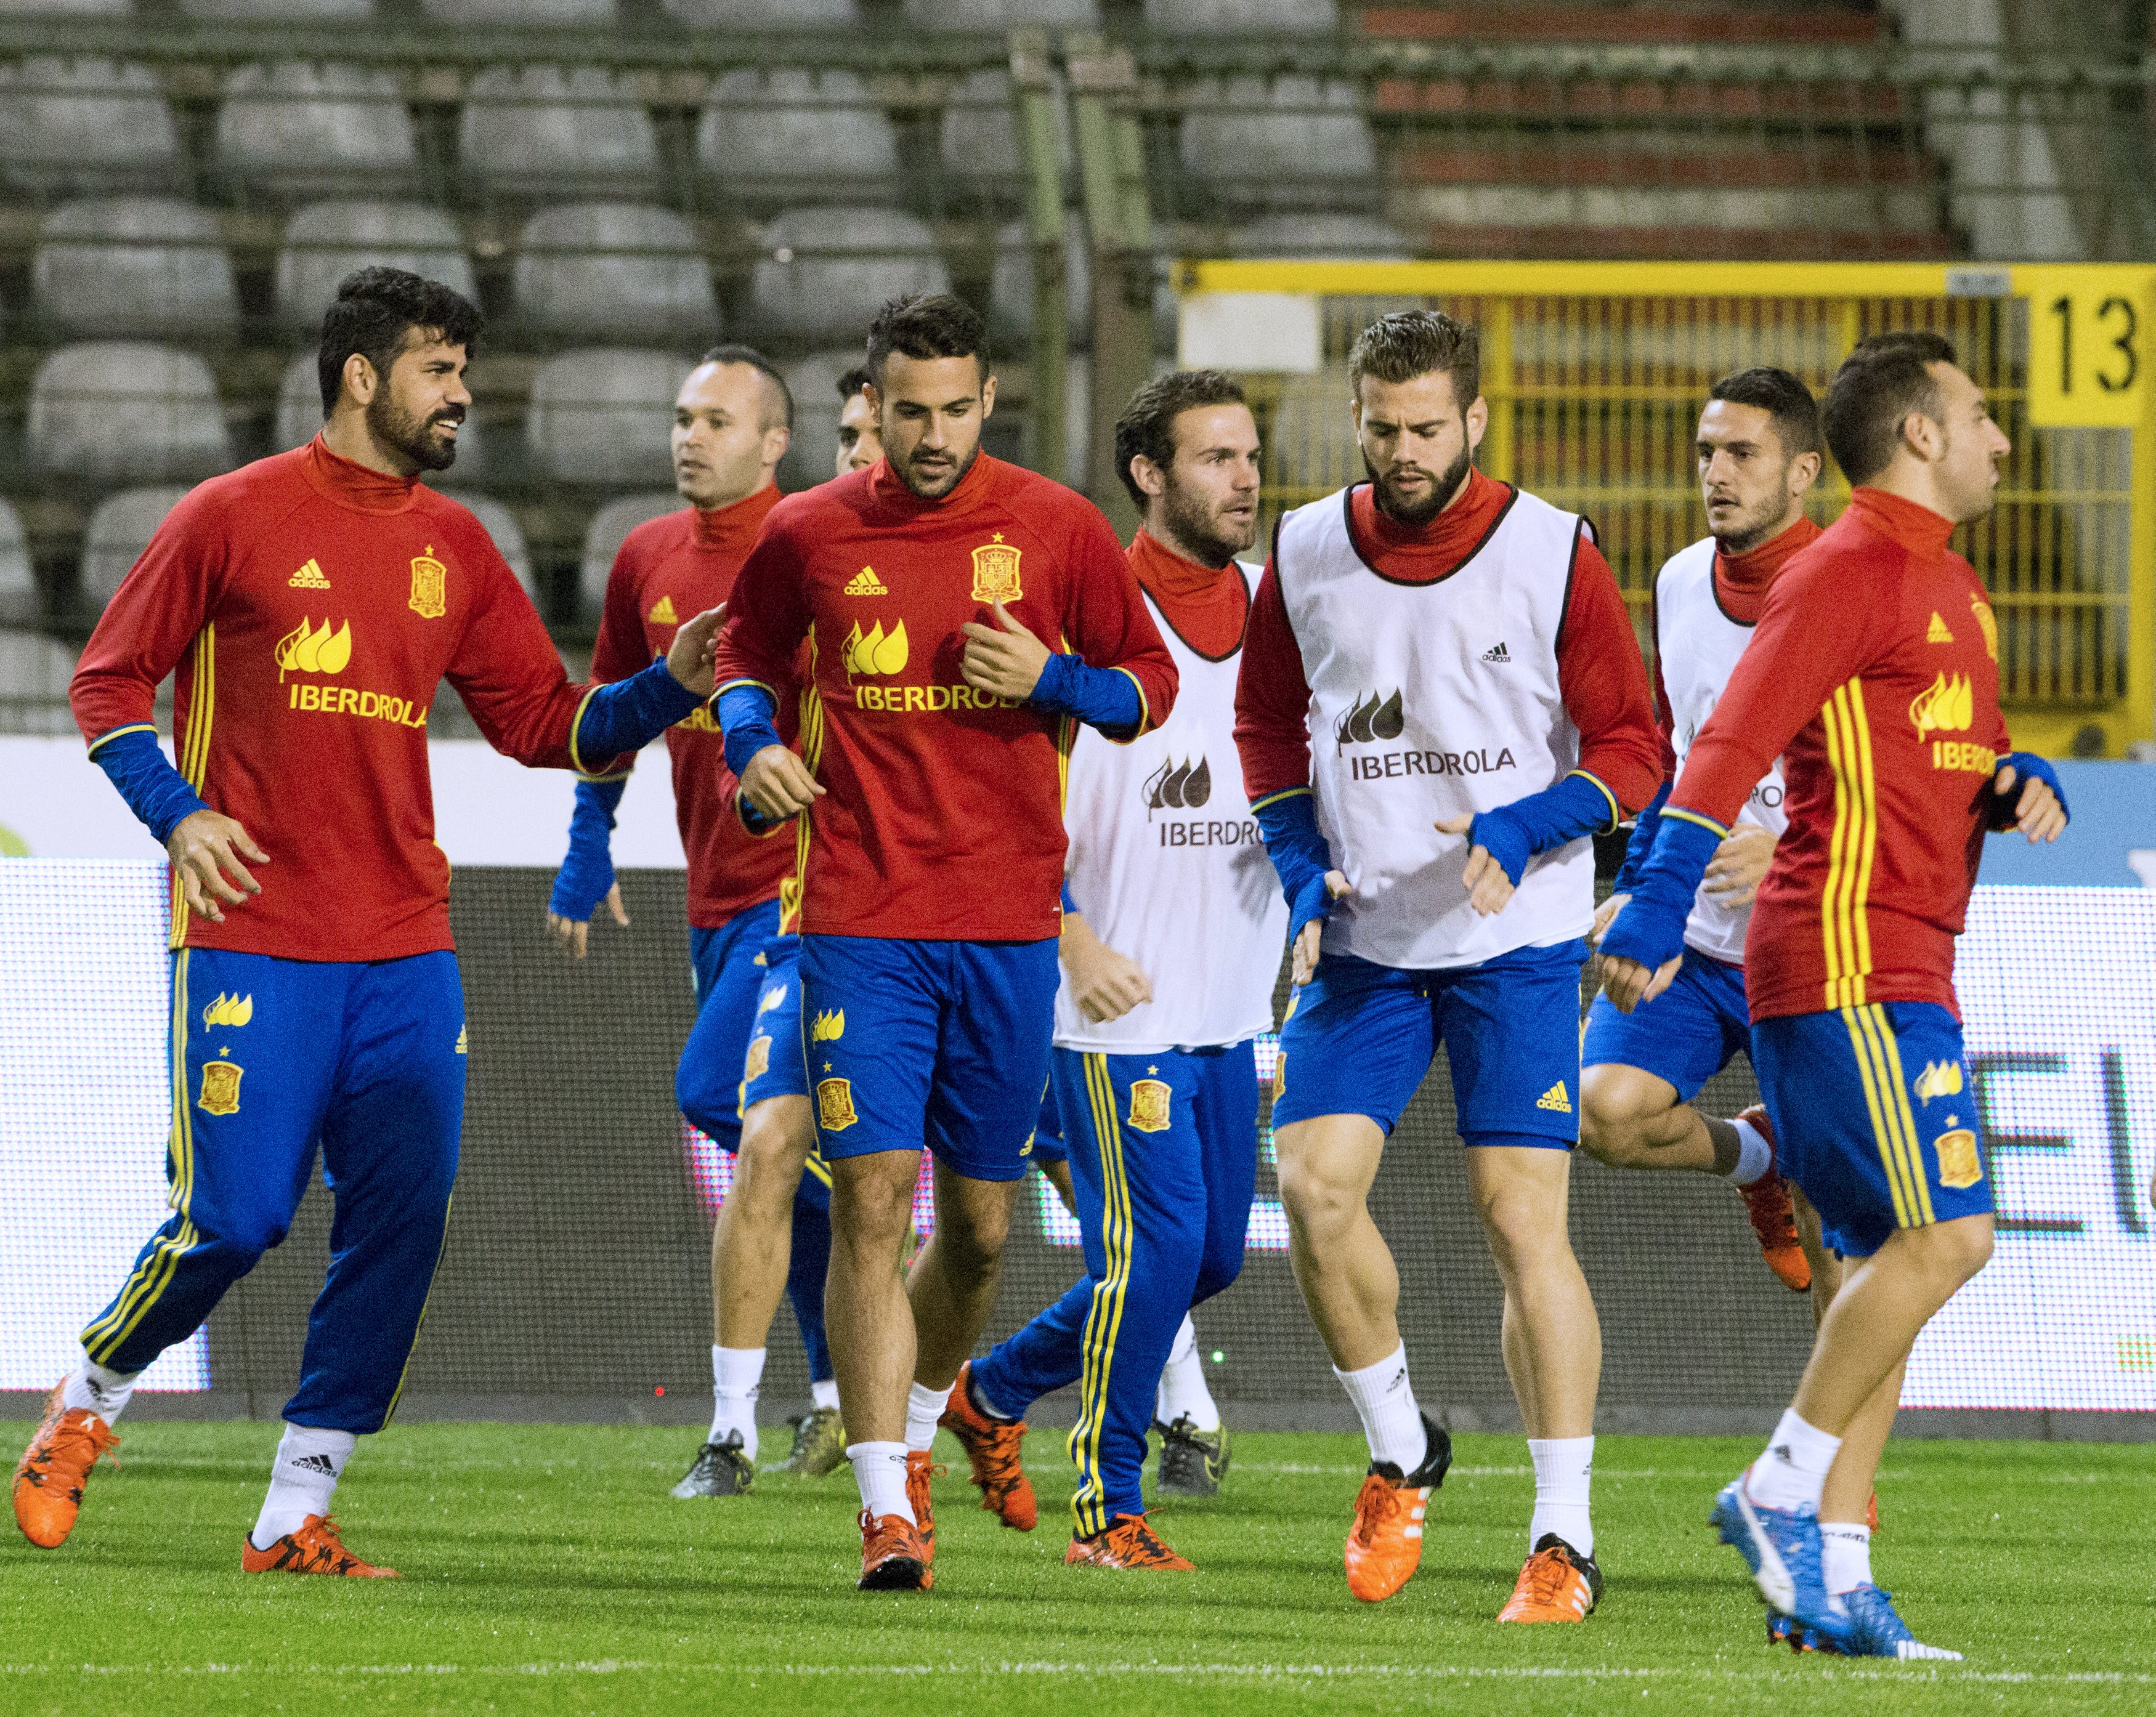 Spanish players practice during a national team soccer training session in Brussels, Belgium November 16, 2015. Belgium will play a friendly match on Tuesday against Spain. REUTERS/Delmi Alvarez   FOR EDITORIAL USE ONLY. NO RESALES. NO ARCHIVE.